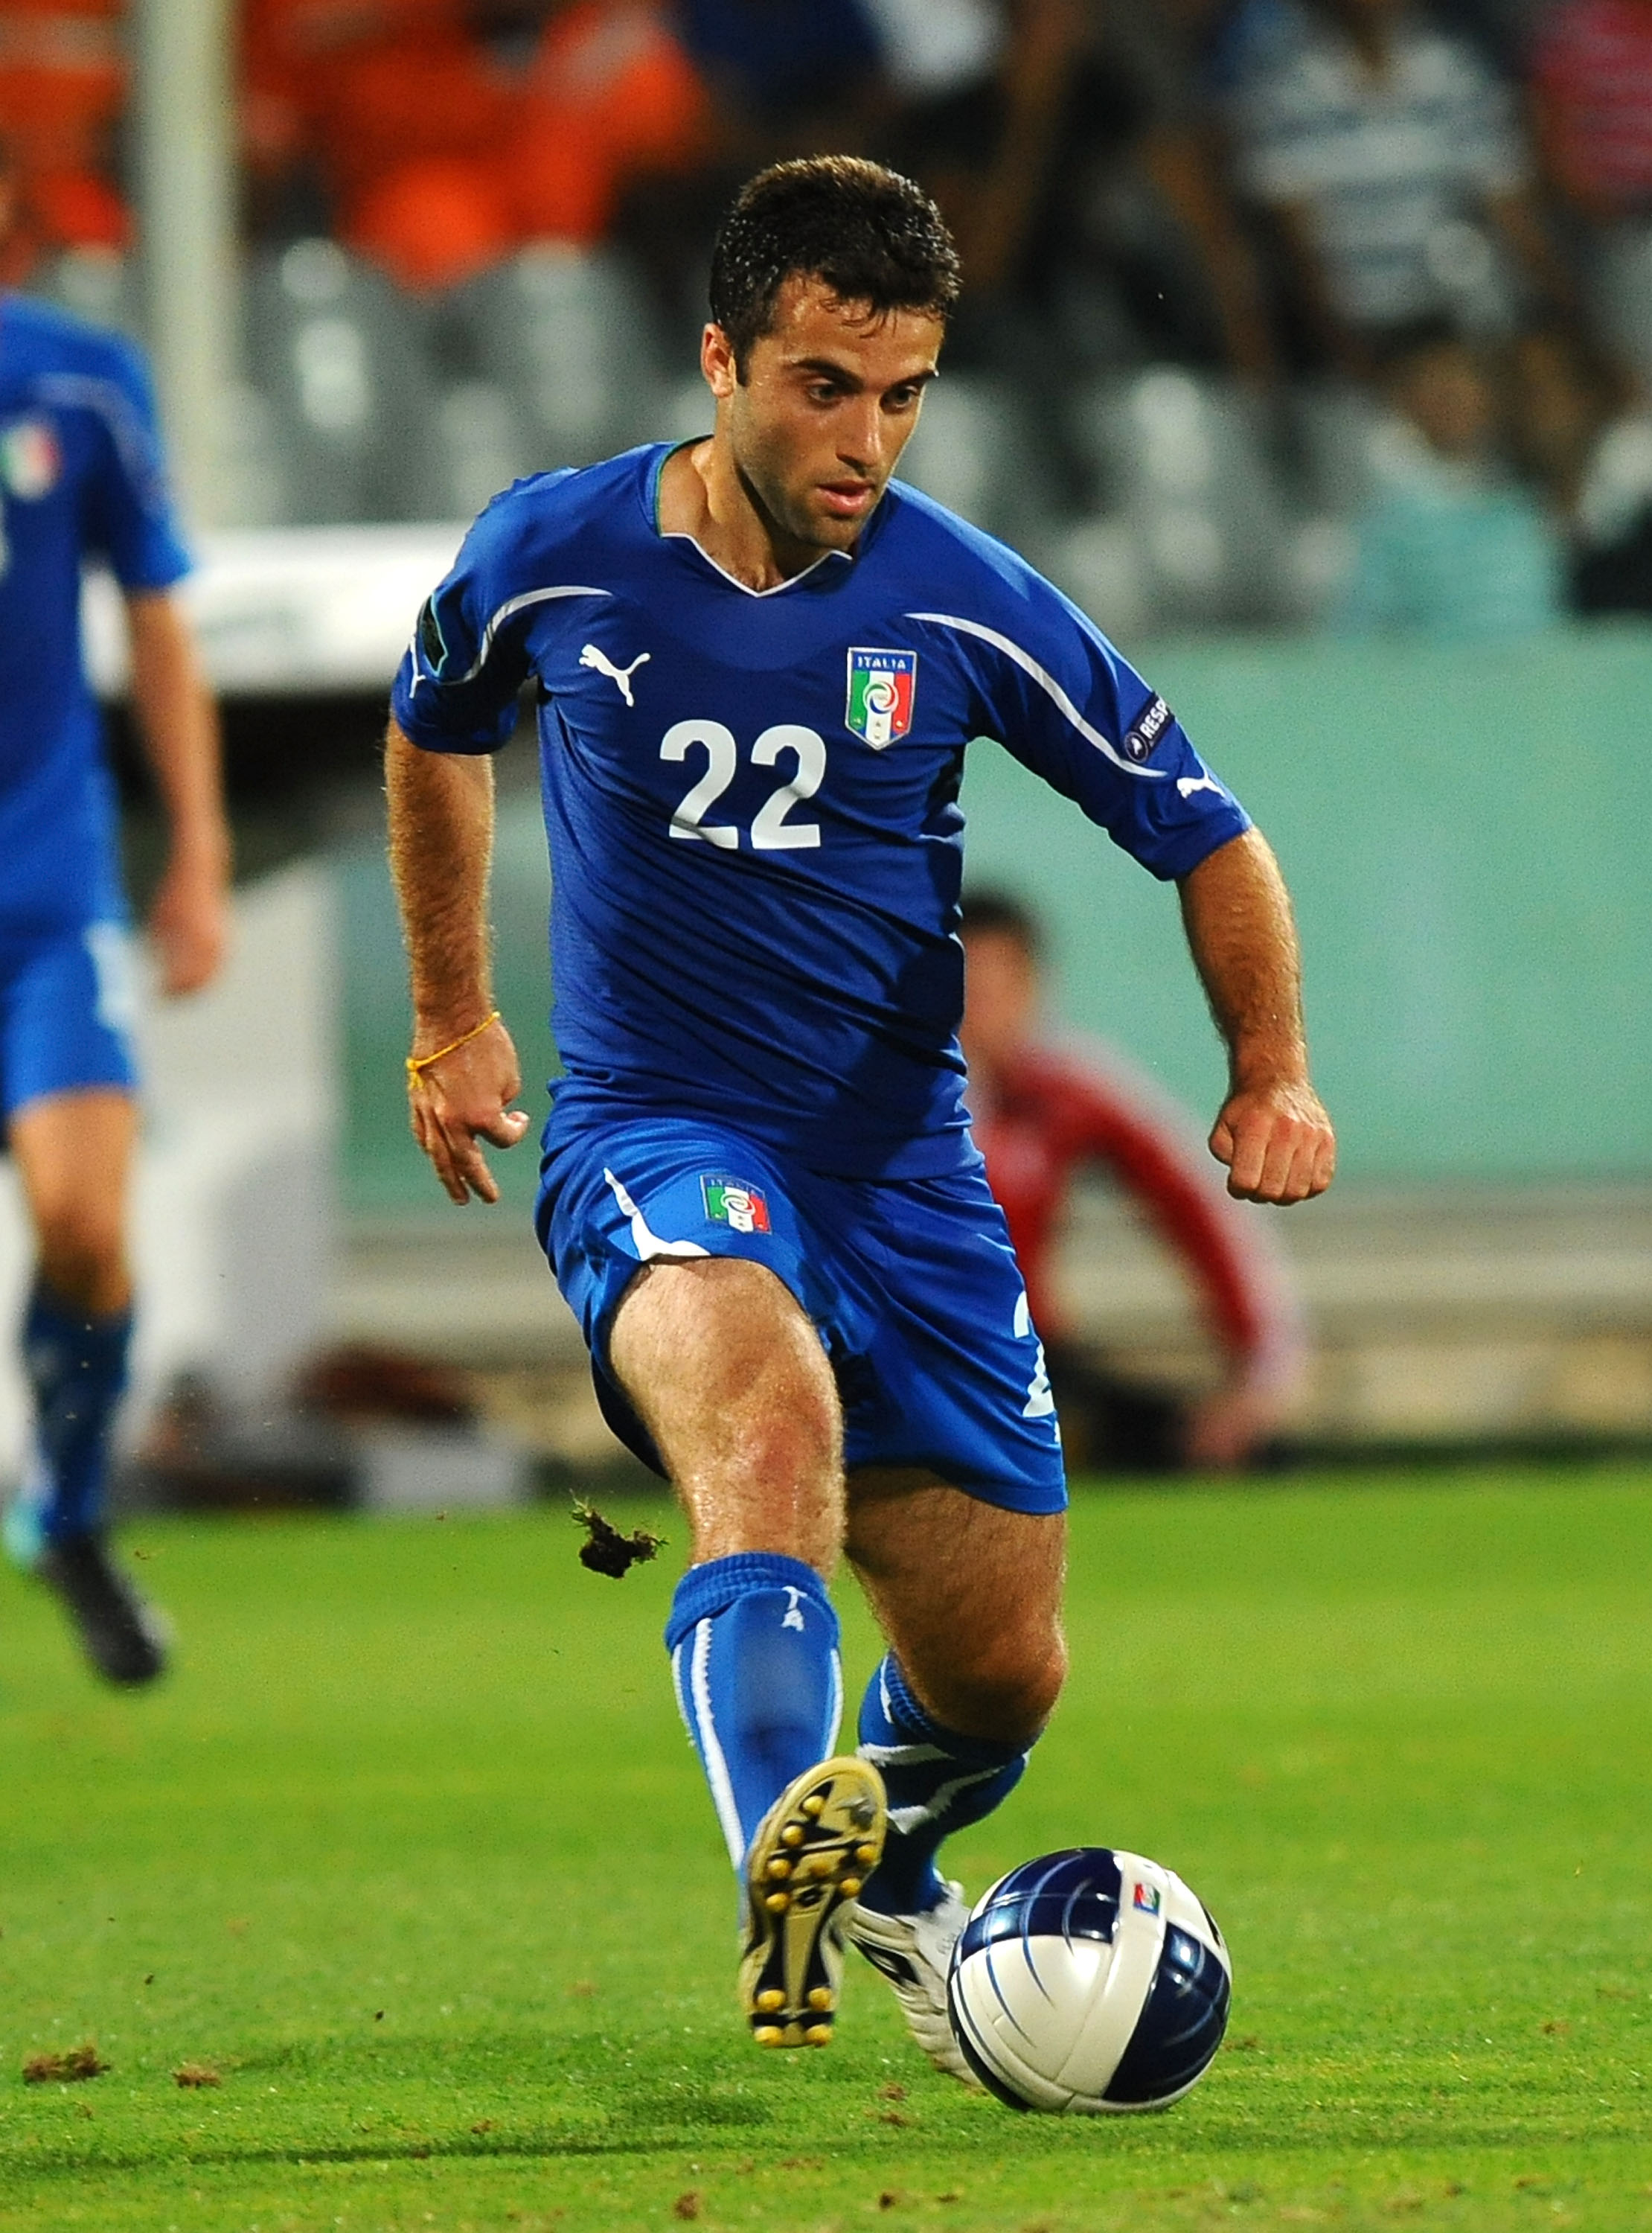 FLORENCE, ITALY - SEPTEMBER 07: Giuseppe Rossi  of Italy in action during the Euro 2012 qualifying match between Italy and Faroe Islands at Stadio Artemio Franchi on September 7, 2010 in Florence, Italy. (Photo by Massimo Cebrelli/Getty Images)